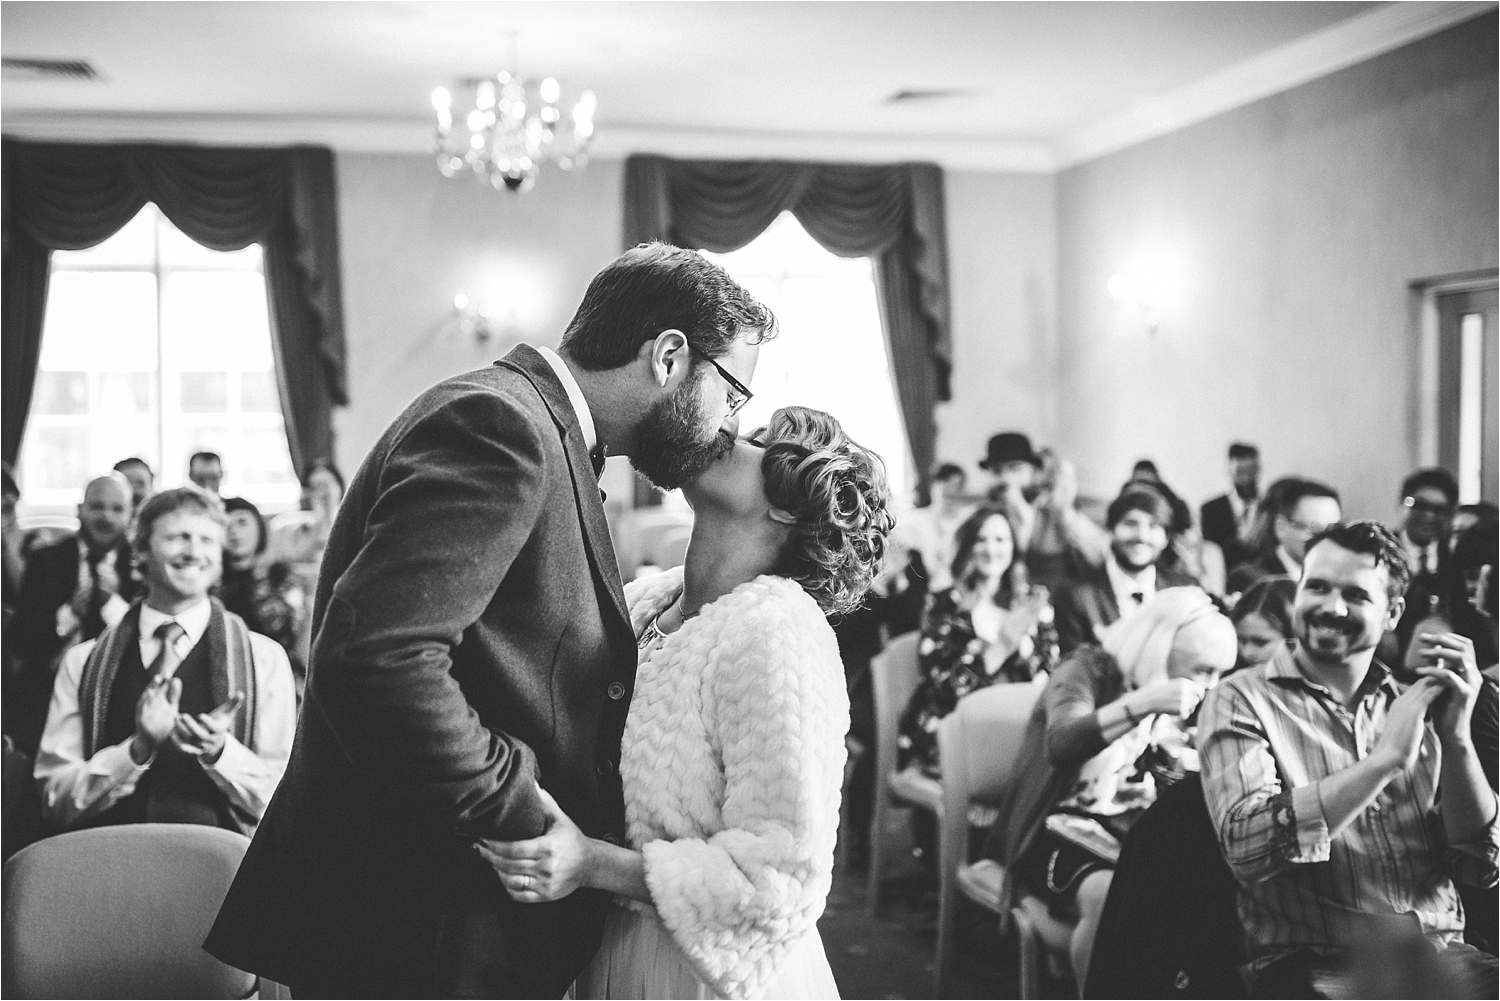 Victoria-Ben-The-West-Mill-darley-abbey-natural-relaxed-documentary-wedding-photography-photographer-Derby-Nottingham-Derbyshire-Nottinghamshire-Leicestershire-Lincolnshire-East-Midlands_0137.jpg